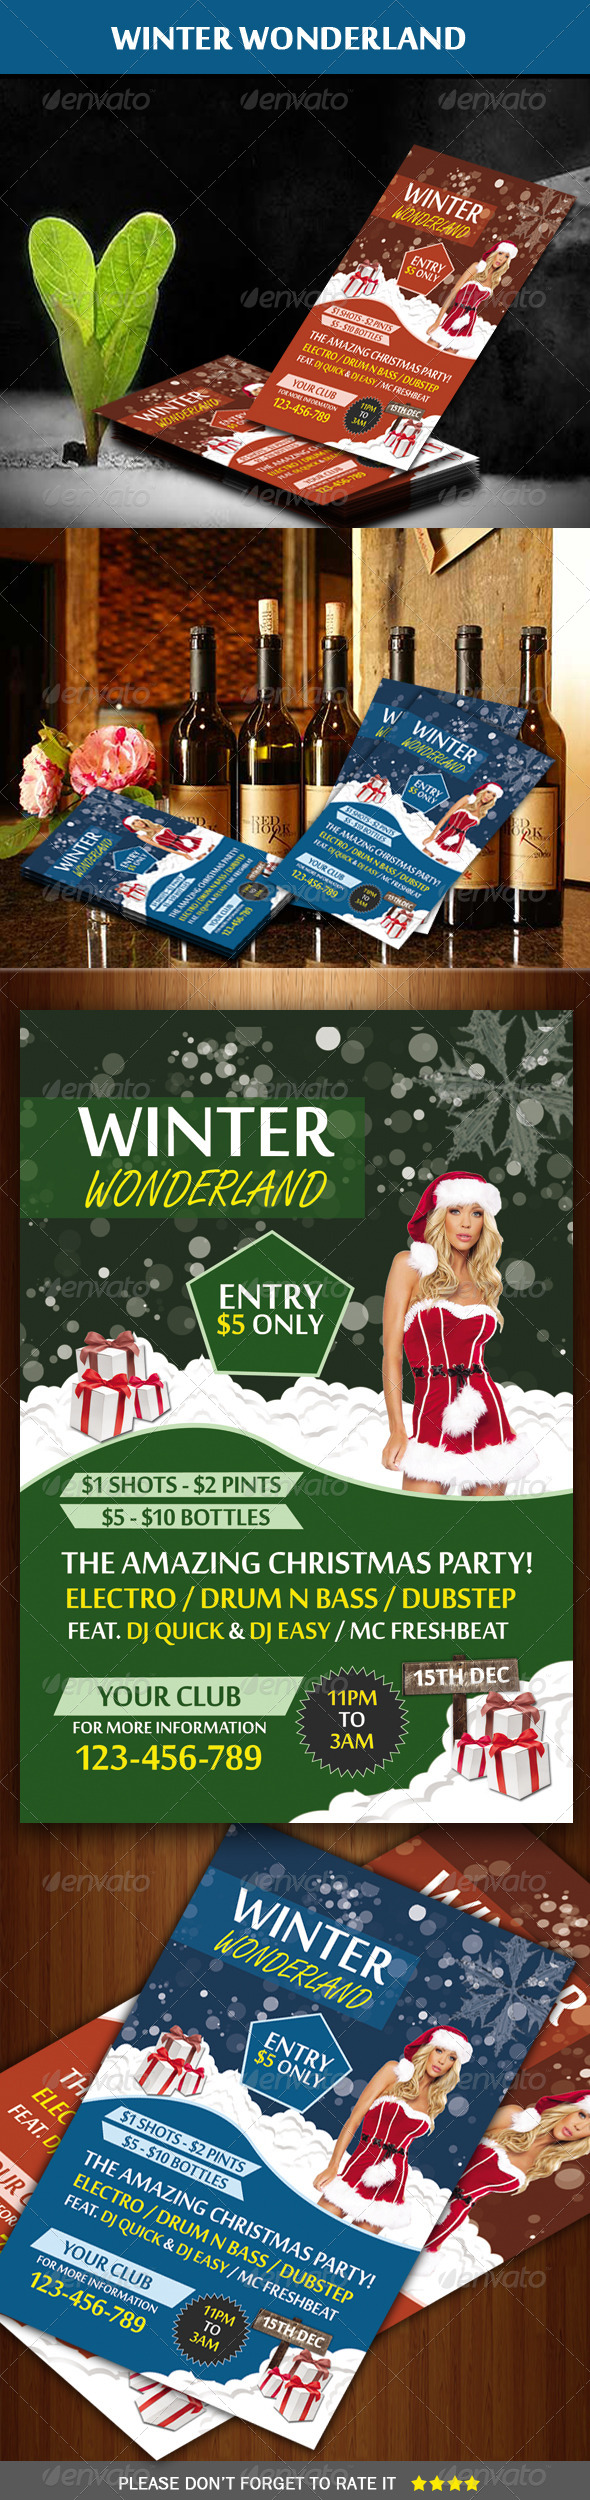 Winter Wonderland Party Flyer - Clubs & Parties Events